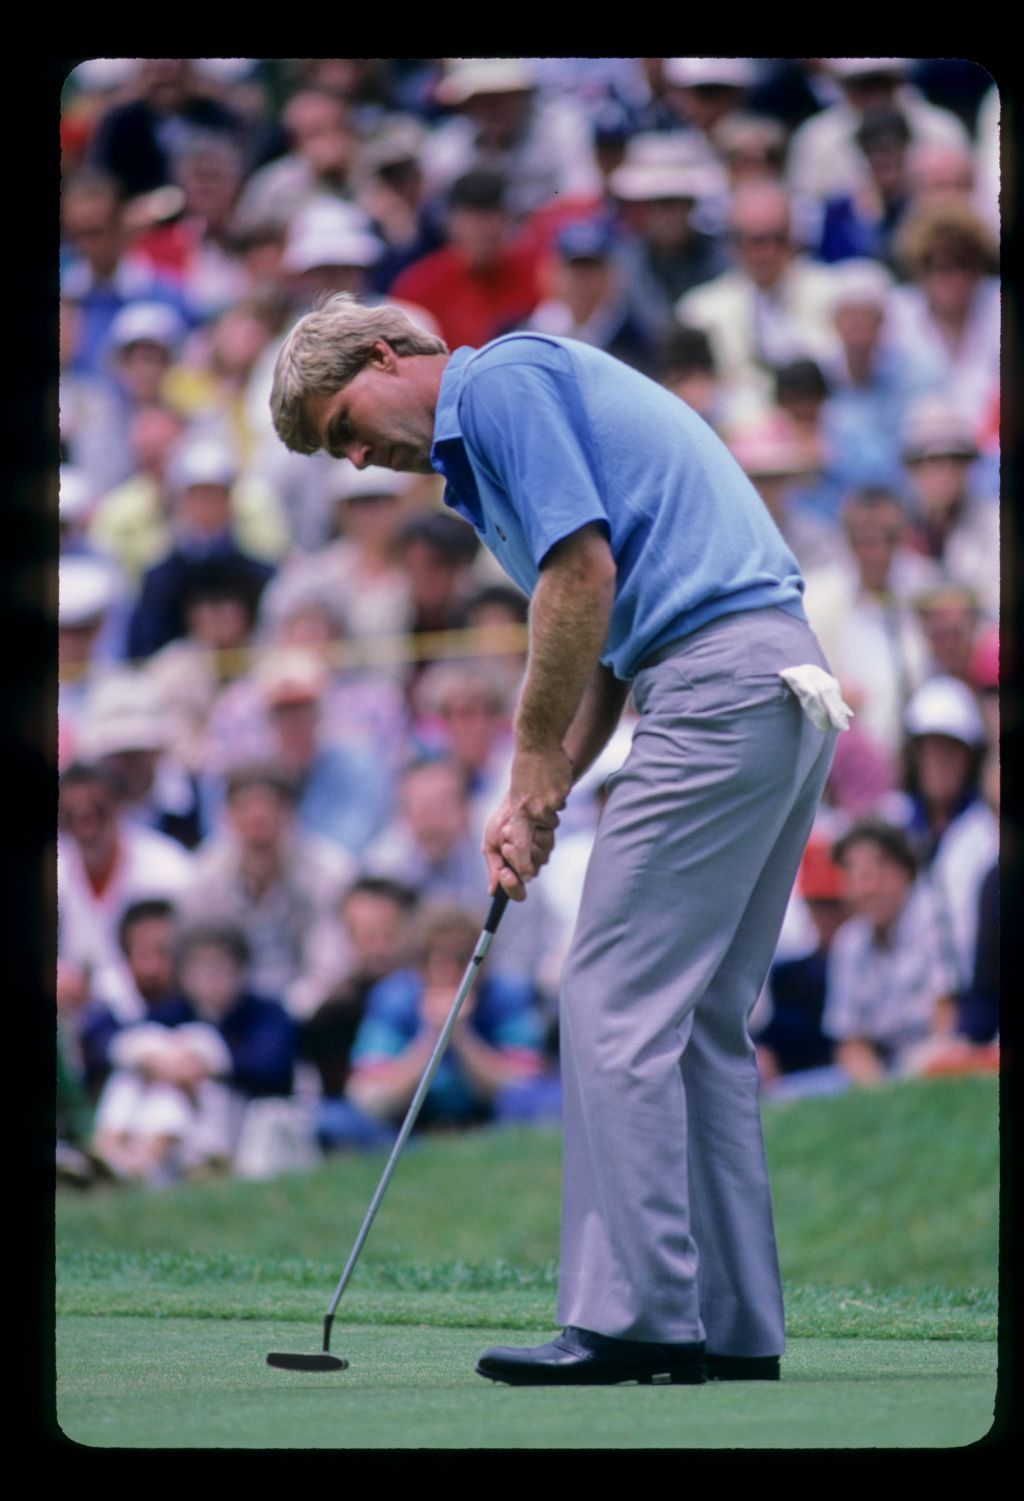 Hal Sutton putting during the 1985 US Open